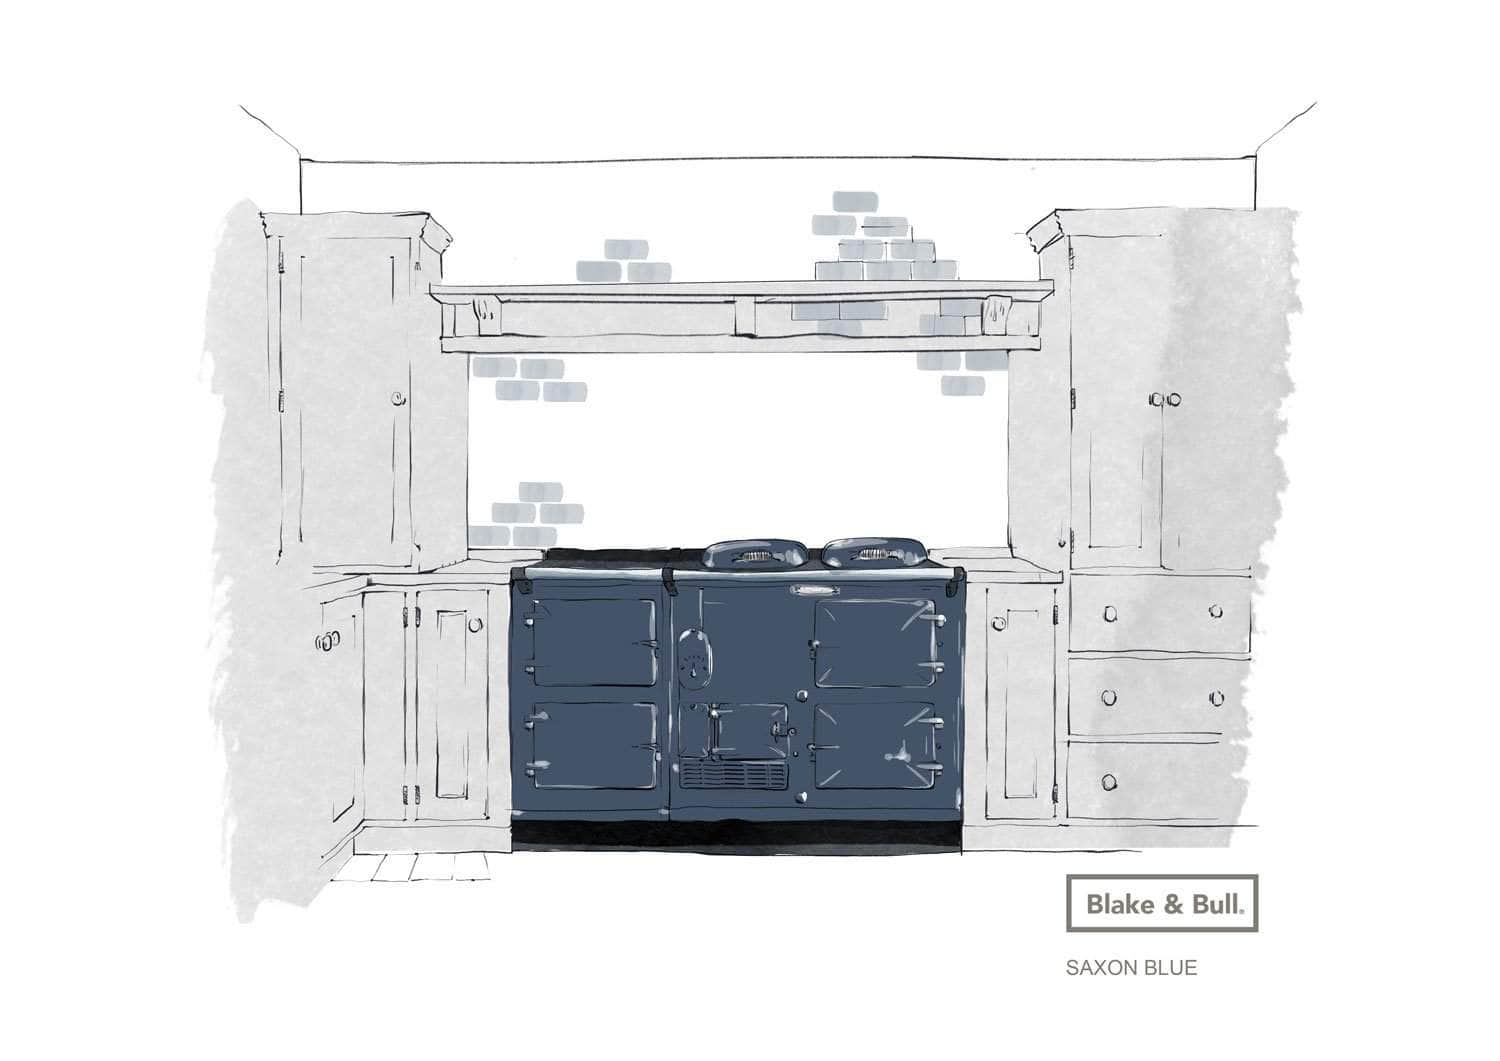 Reconditioned Aga range cooker 'Standard' model 4 oven | 'eCook' by Blake & Bull | £9422 Saxon Blue / Pay in full and save £350. Use code 'SAVE350S' at checkout